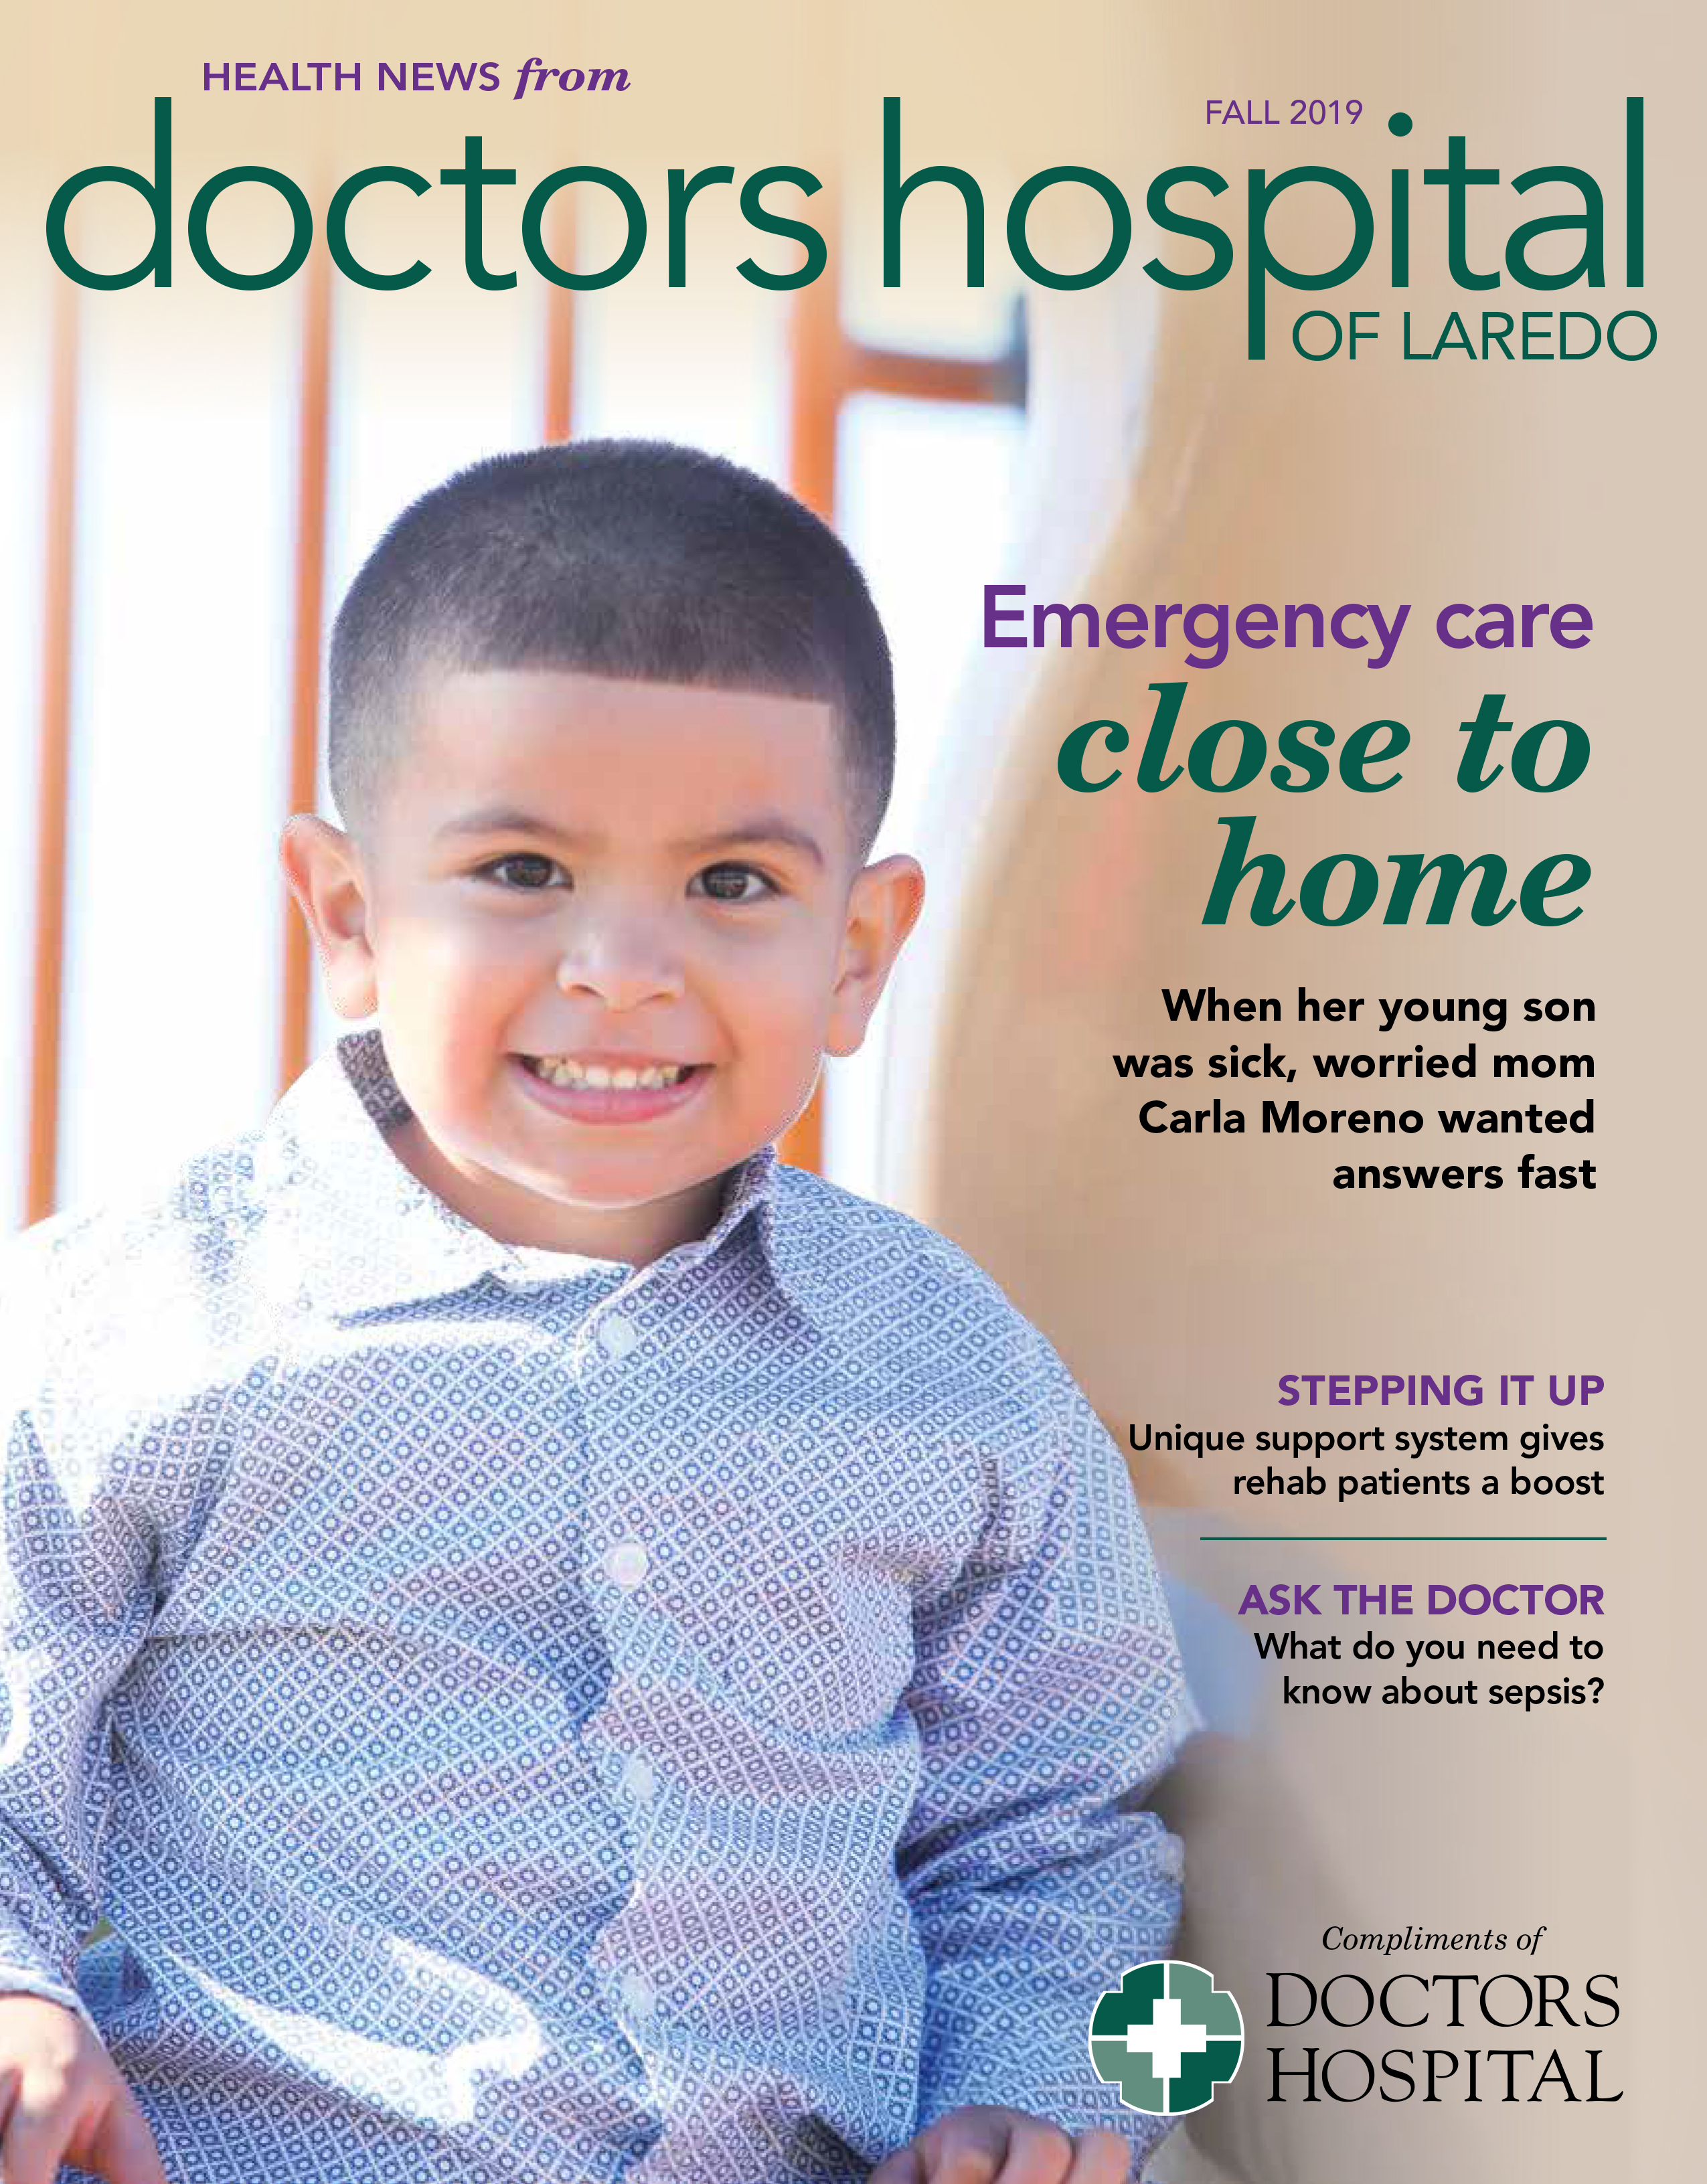 Doctors Hospital Laredo - Health News Magazine Fall 2019 (December)